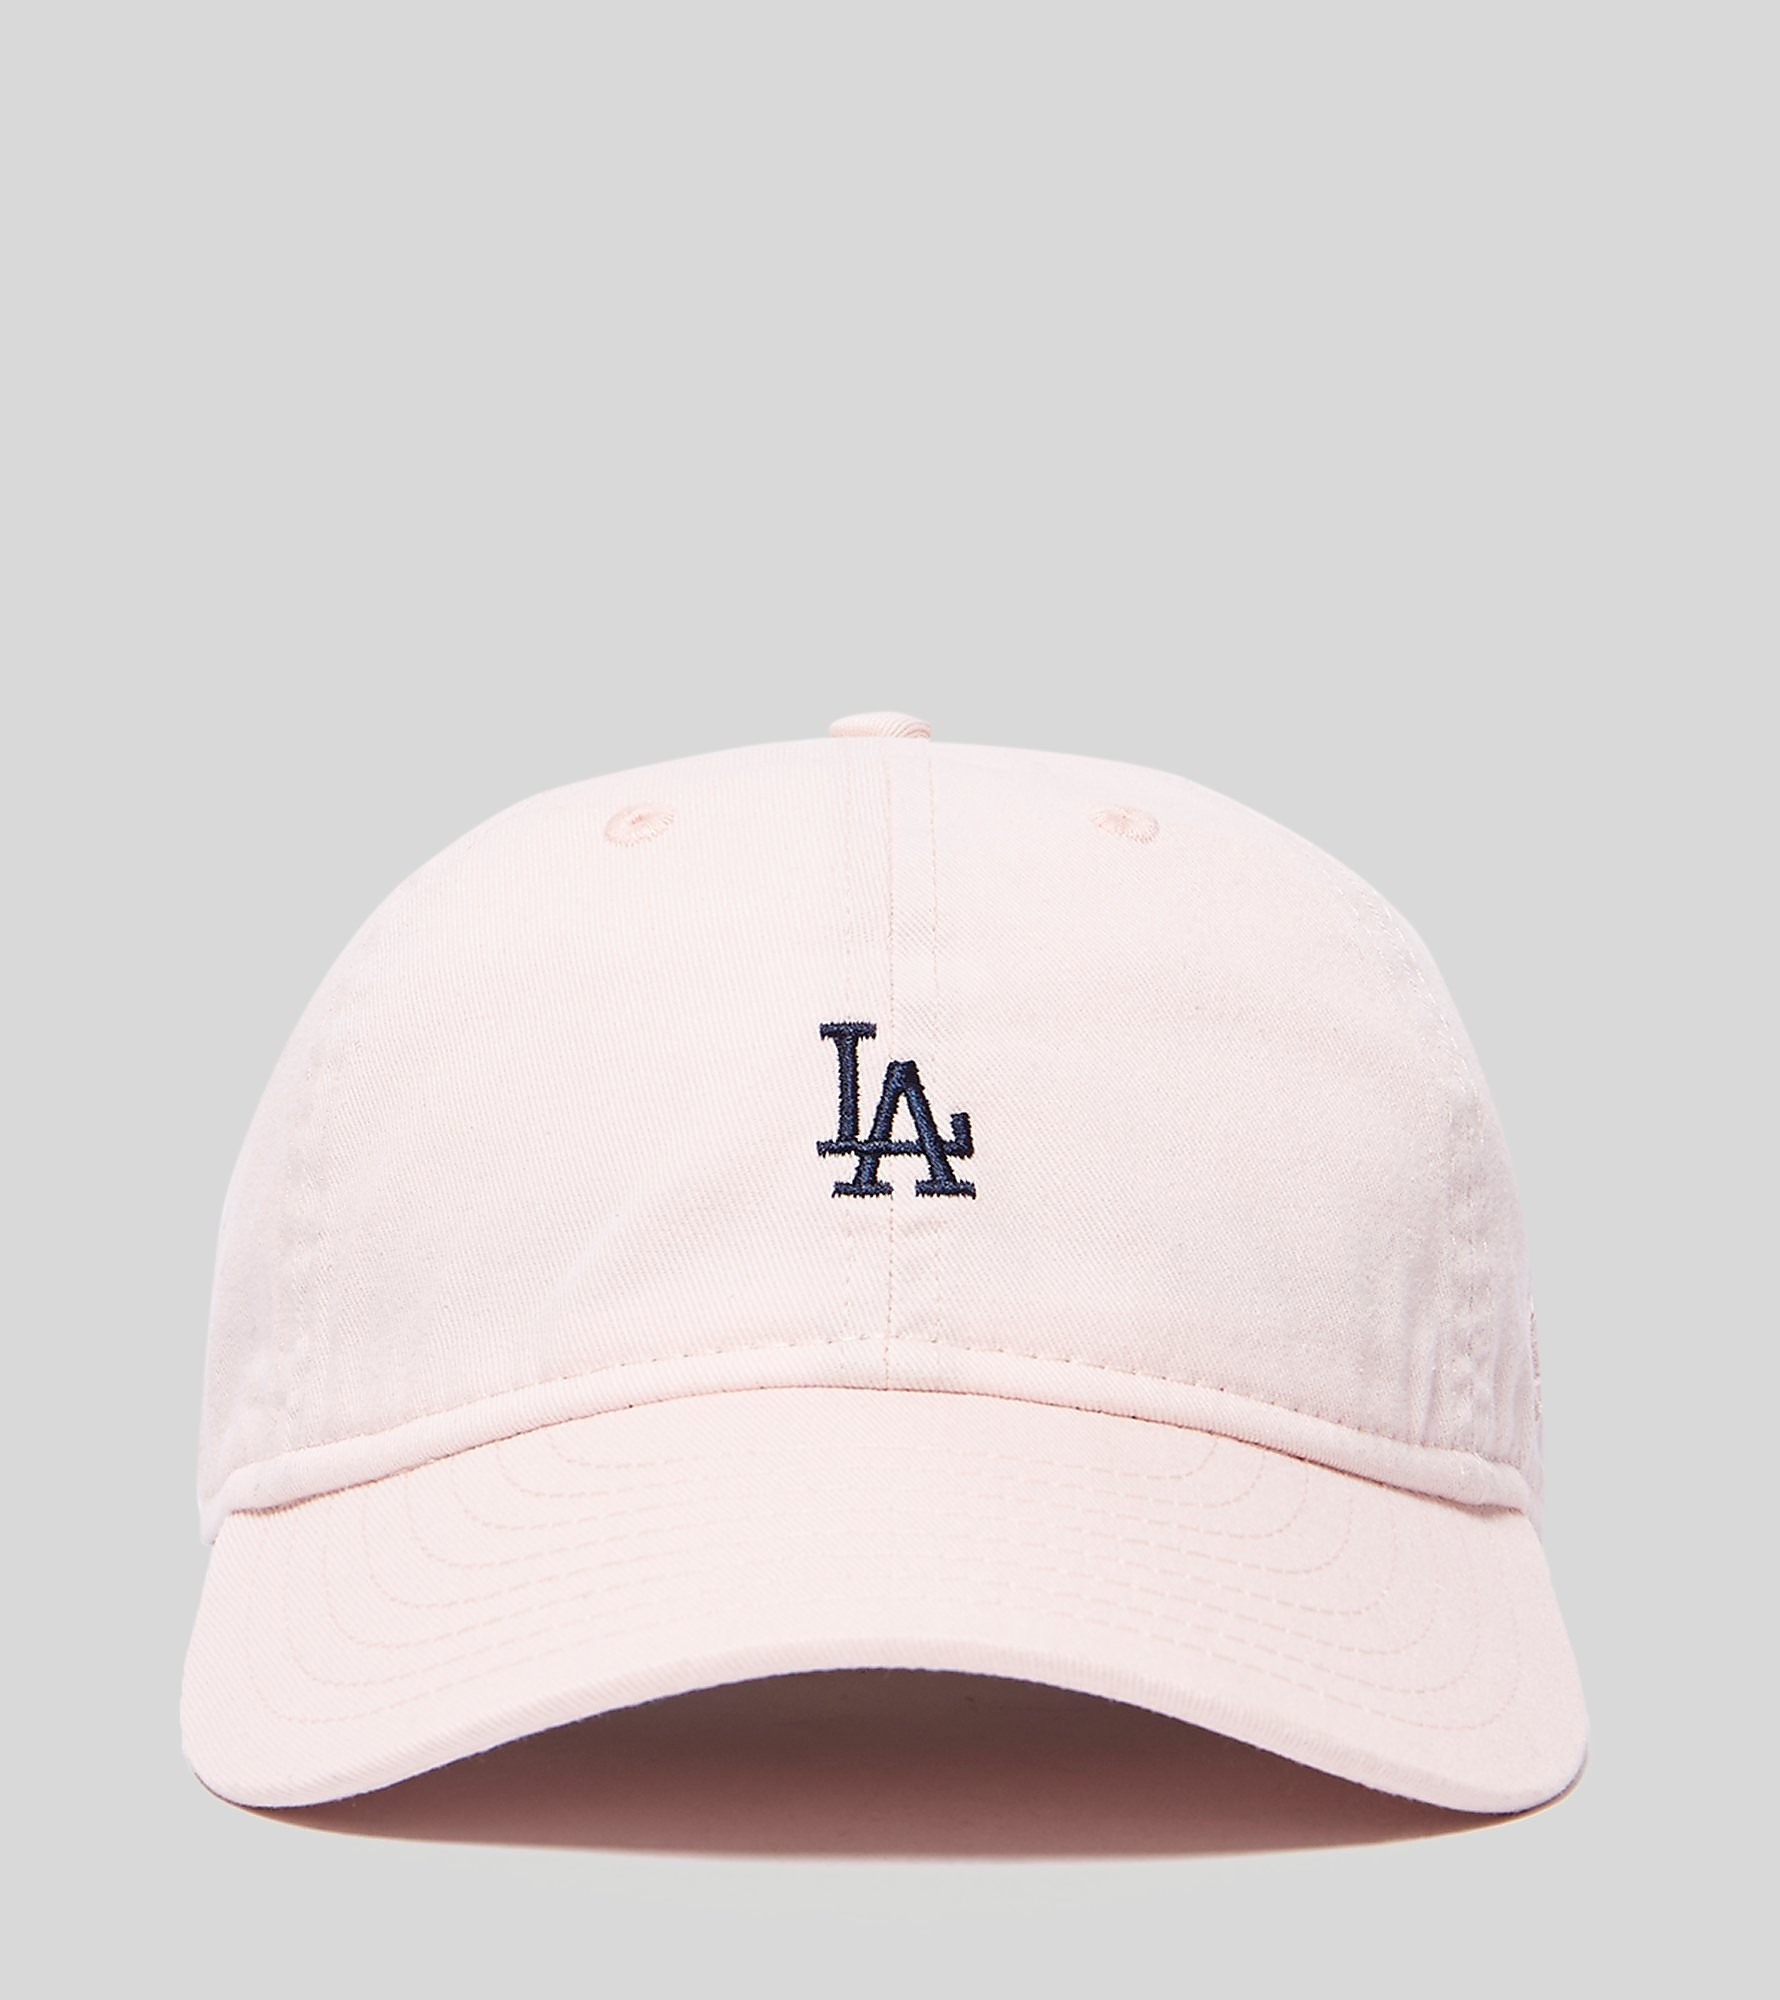 New Era 9FIFTY LA Cap - size? Exclusive